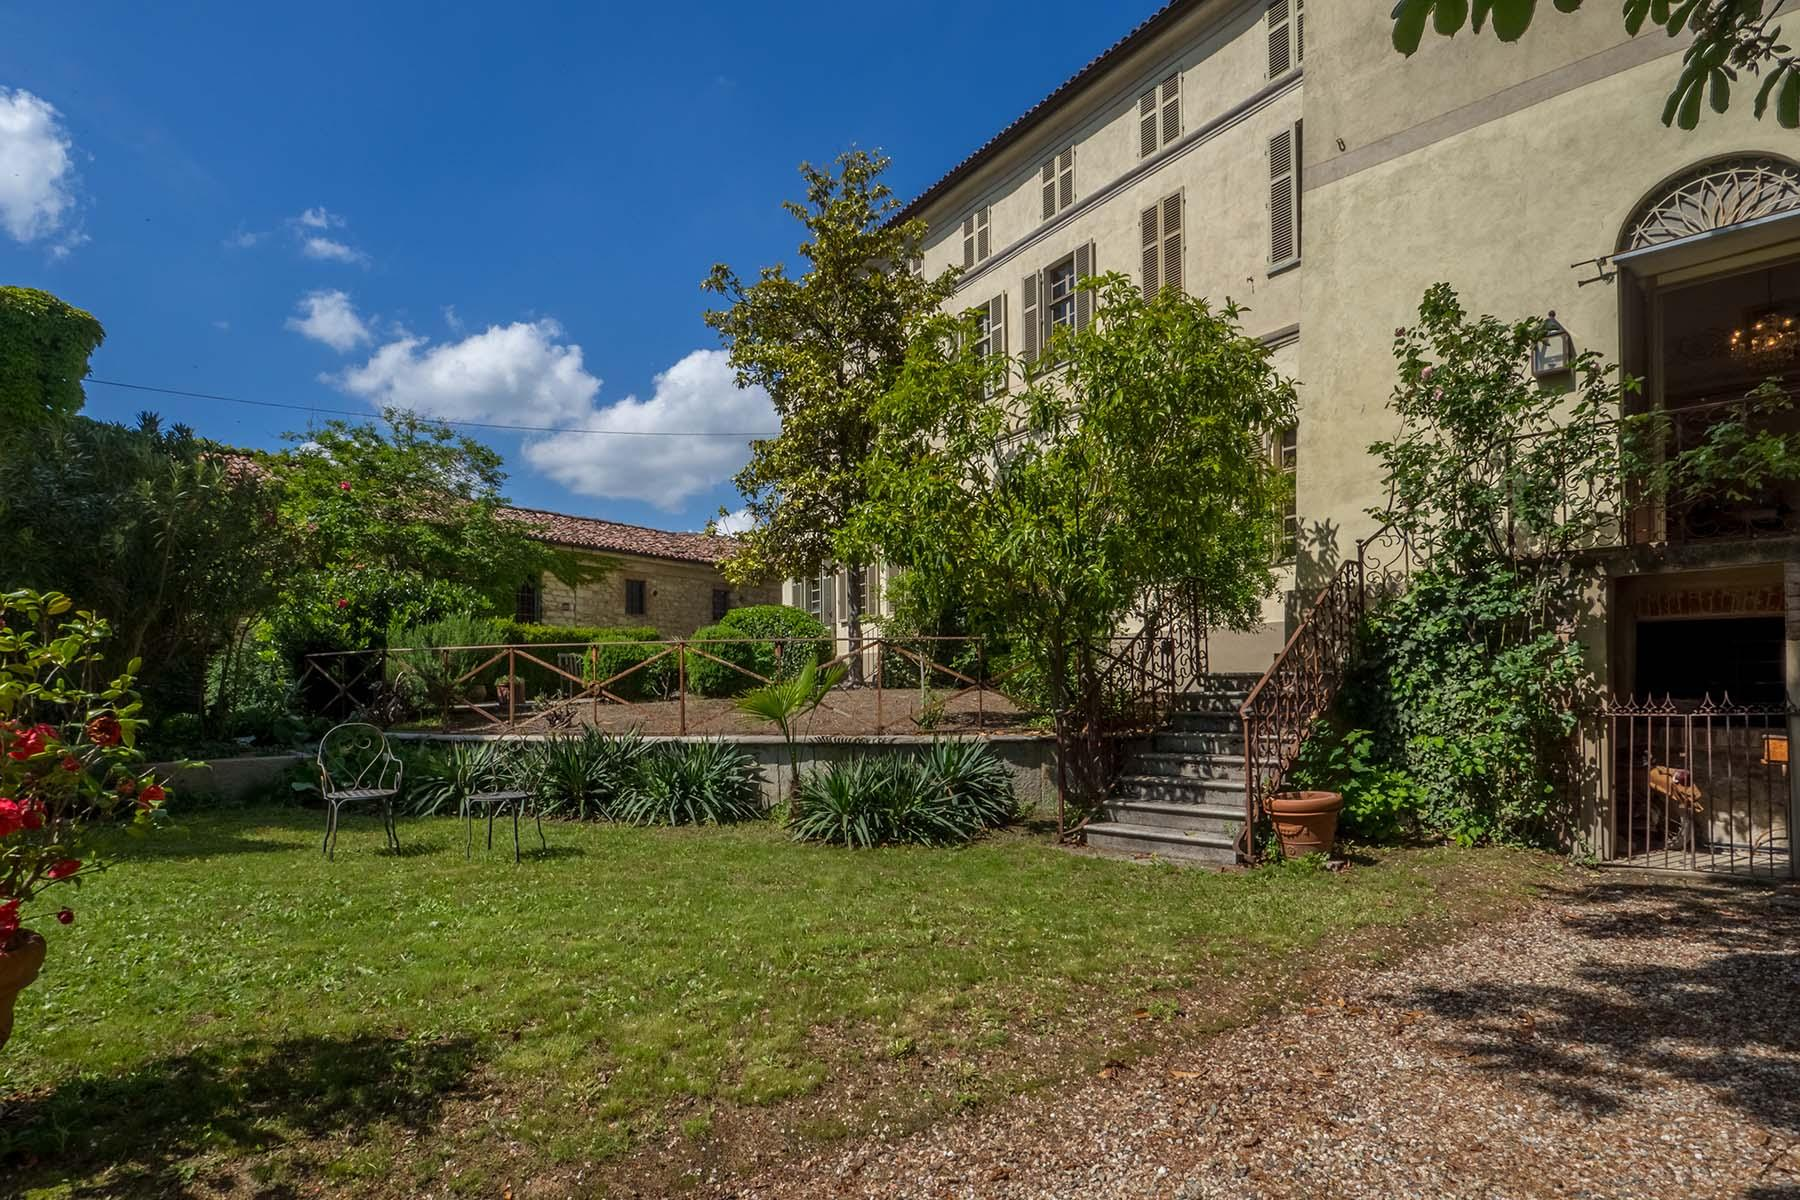 Enchanting historical villa in the heart of the Monferrato region - 12